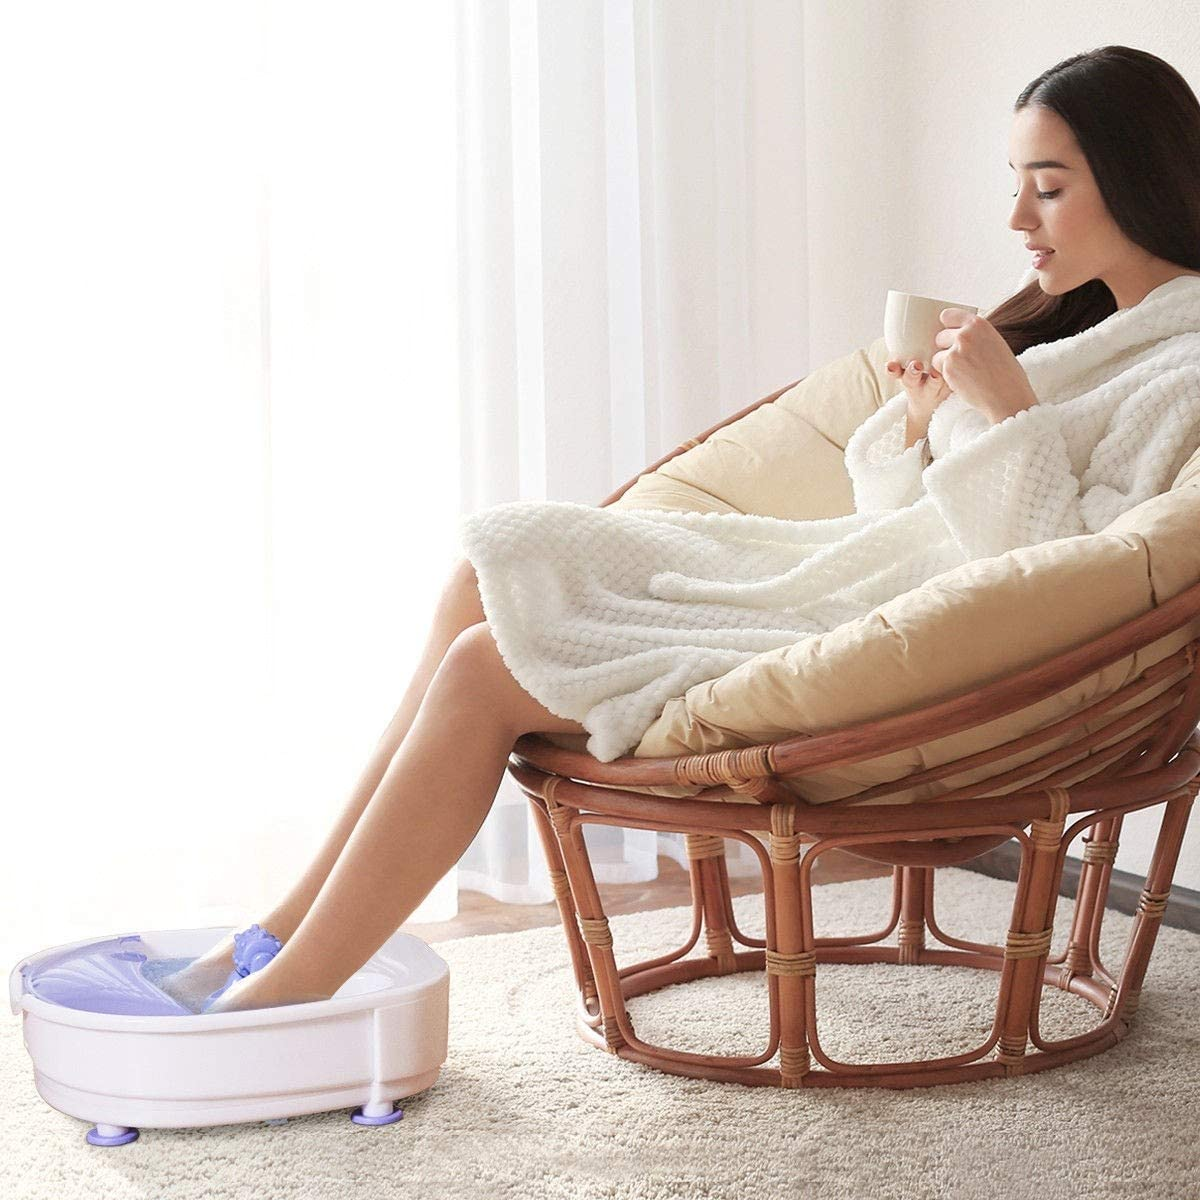 Safeplus Electrical Foot Basin Portable Foot Spa Massager with Heating Bubbles Point Massage